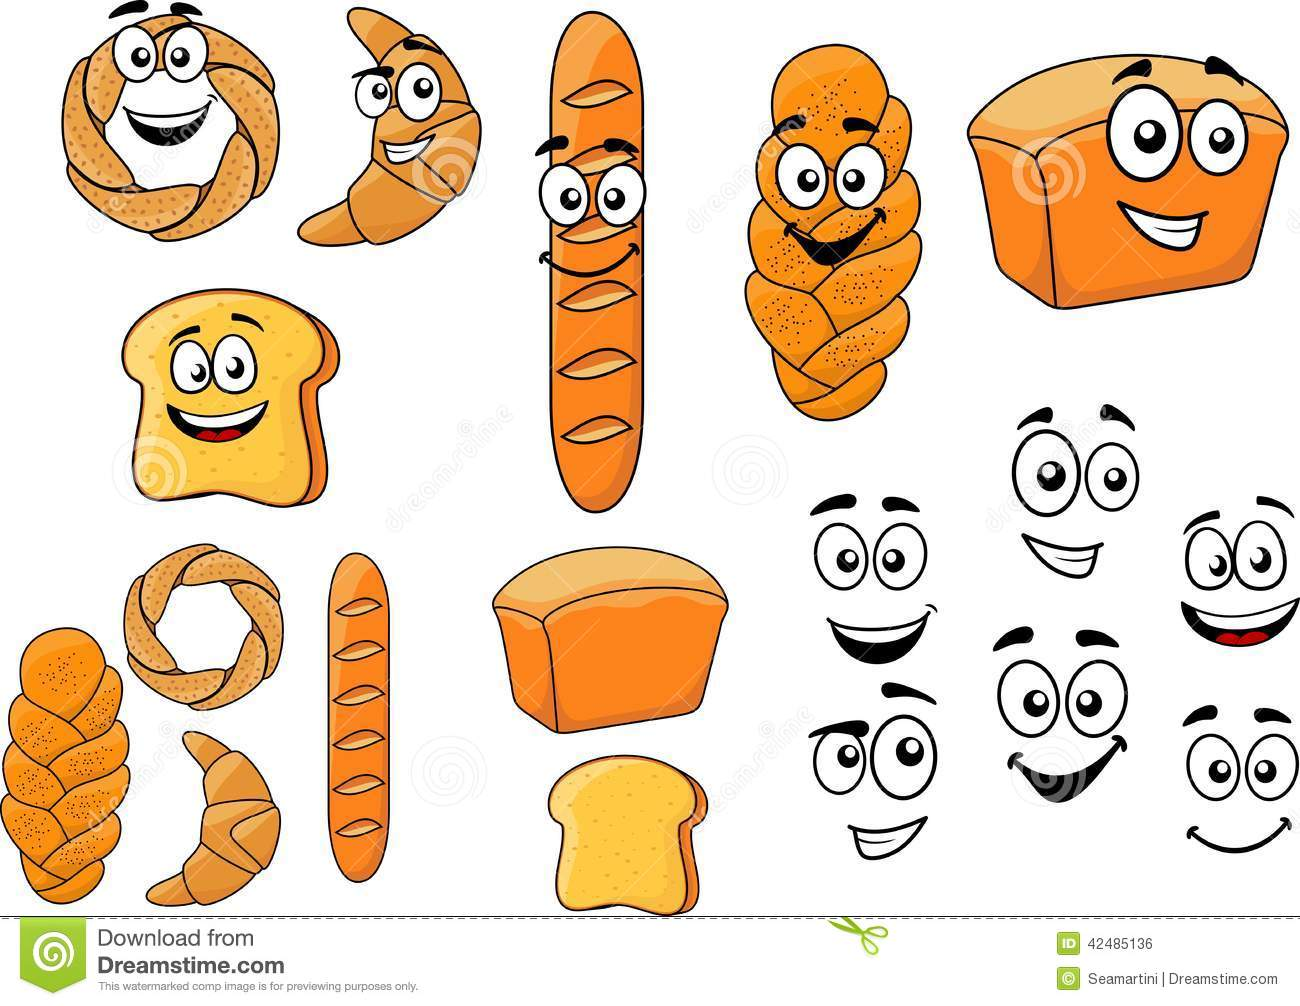 Objetos De Dibujos Animados Panadería Y Panadero: Cartoon Breads With Happy Smiling Faces Stock Vector